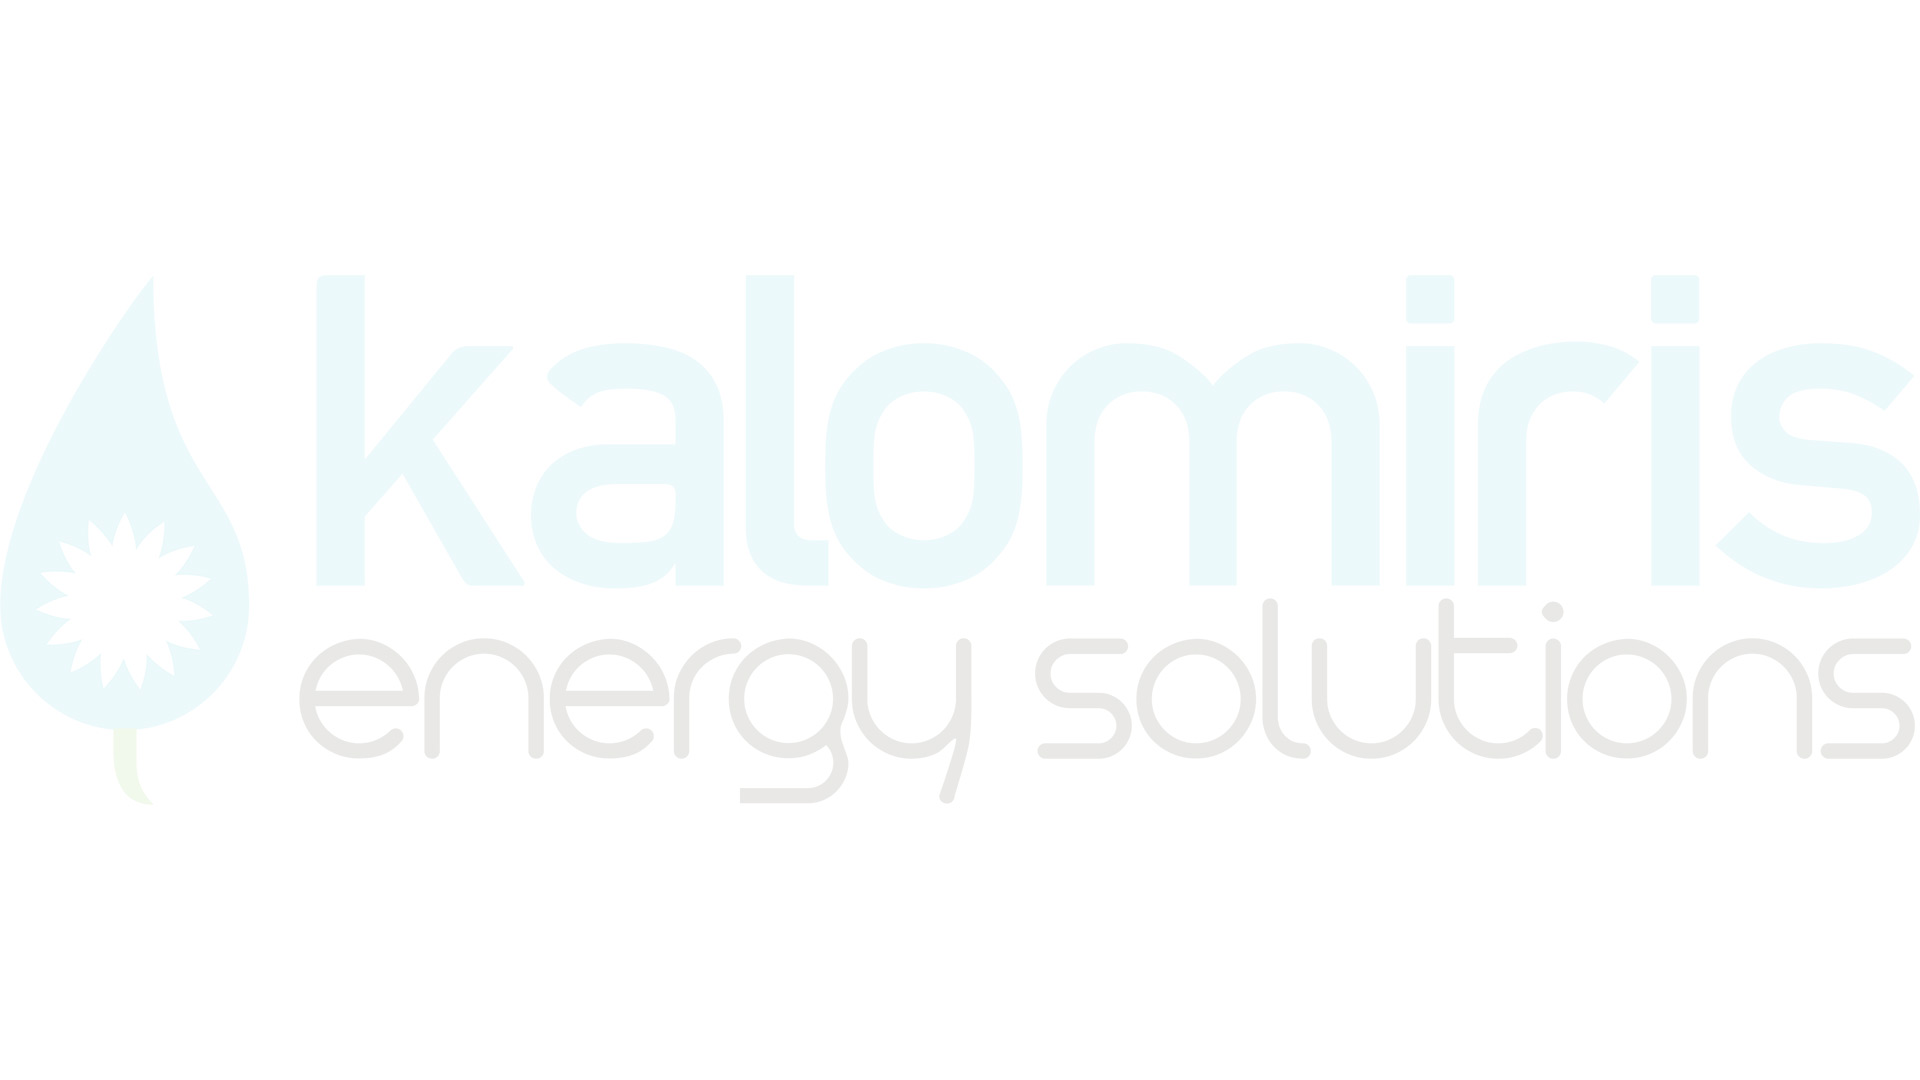 Ceiling Fan CASAFAN ECO NEO II 103 BA Cherry / Walnnut with Light KIT 40.5 (103cm)